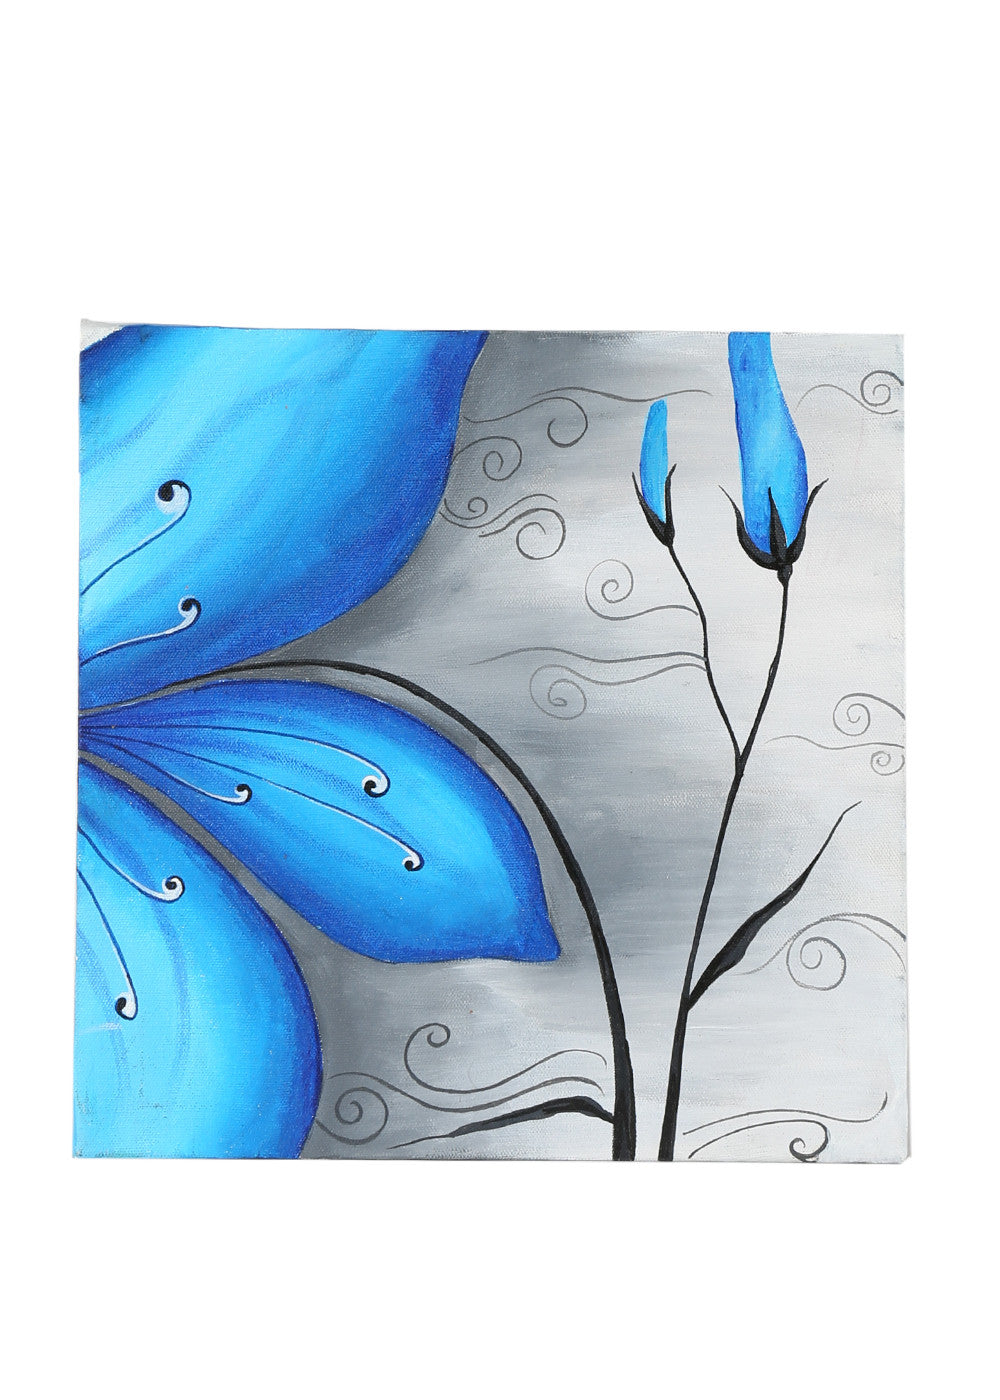 Hand-painted Floweral Musing Blue Panel Painting - RANGRAGE